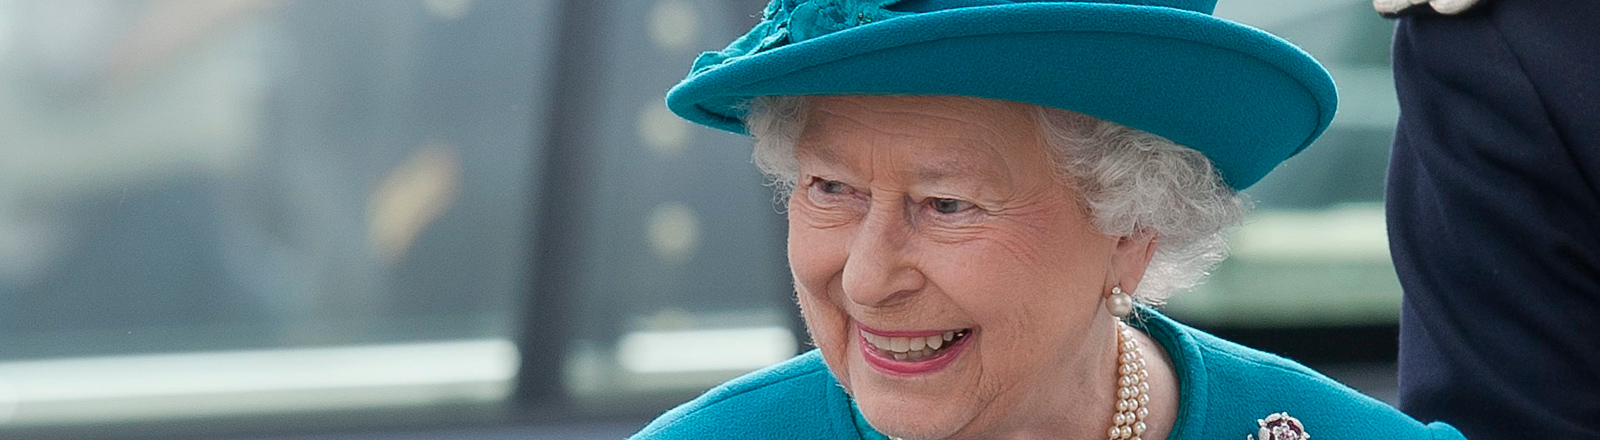 Queen Elizabeth II. am 30. Oktober 2014